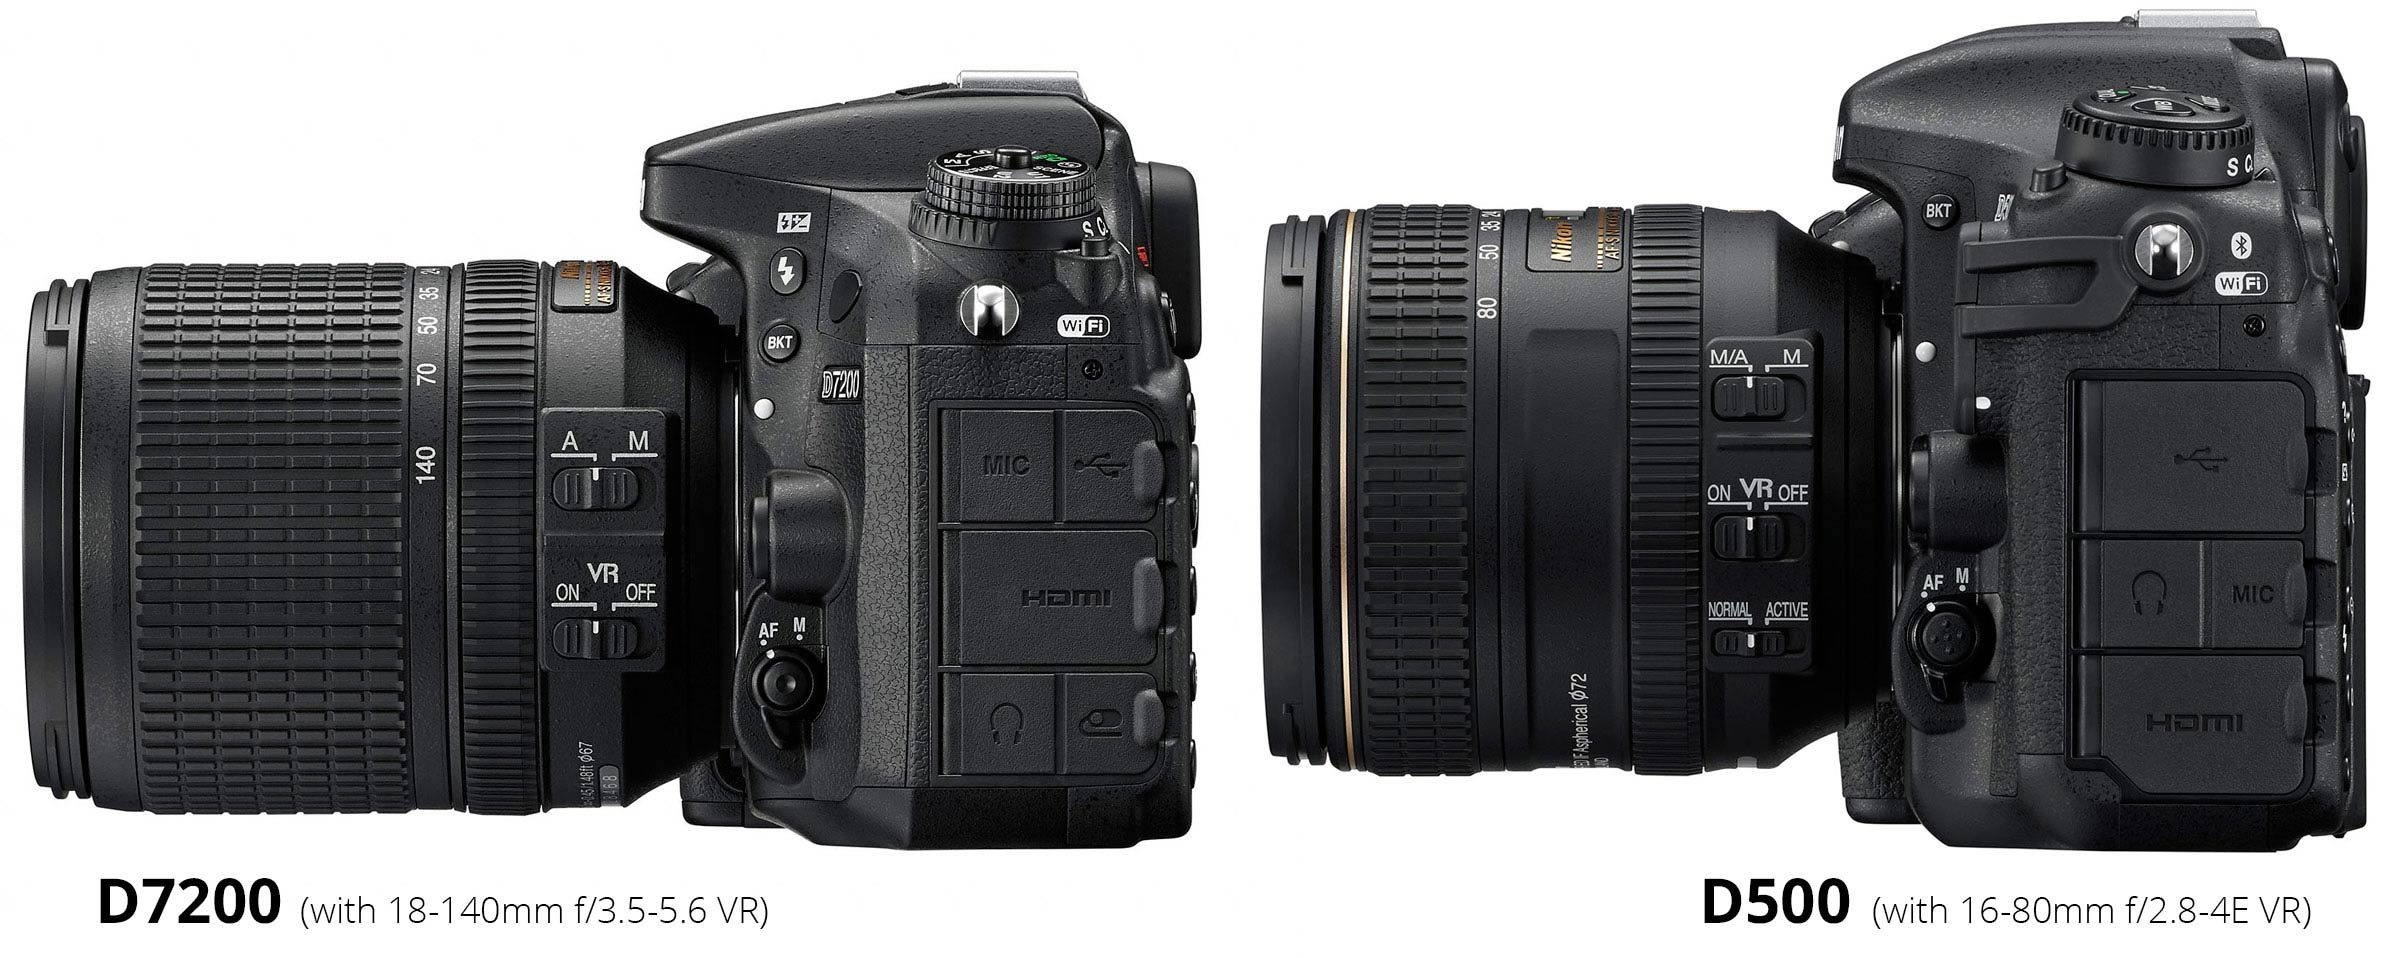 Nikon D7200 vs D500 : Which Should You Buy? – Light And Matter